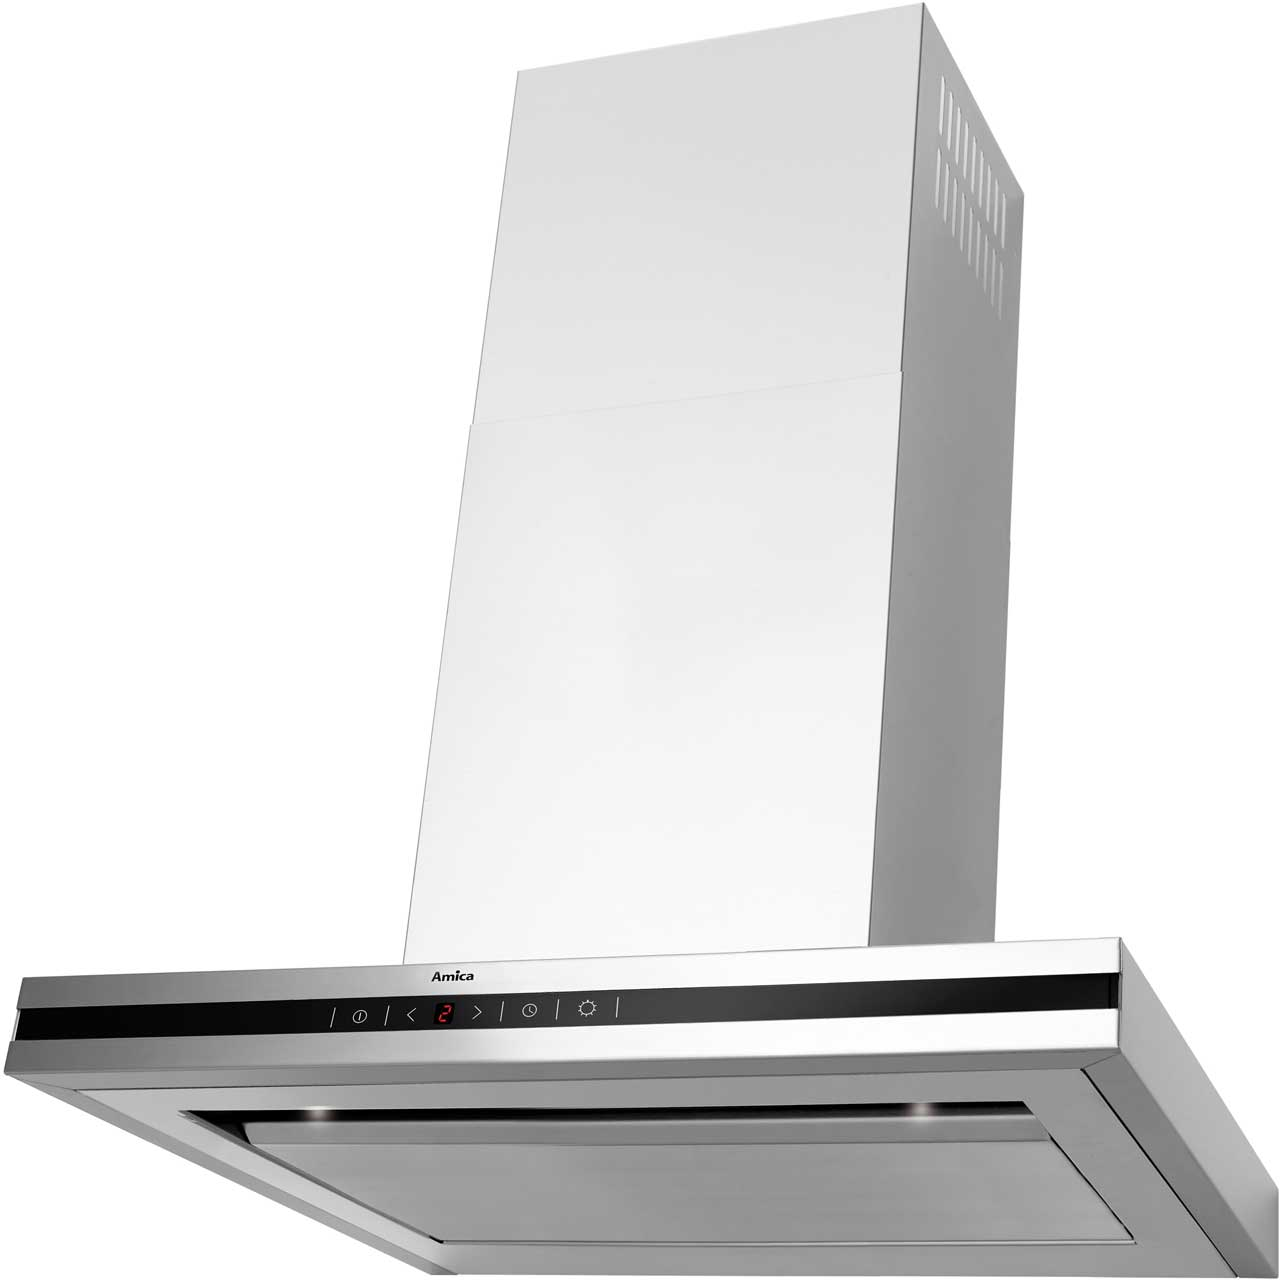 Amica OKS652TUK Integrated Cooker Hood in Stainless Steel